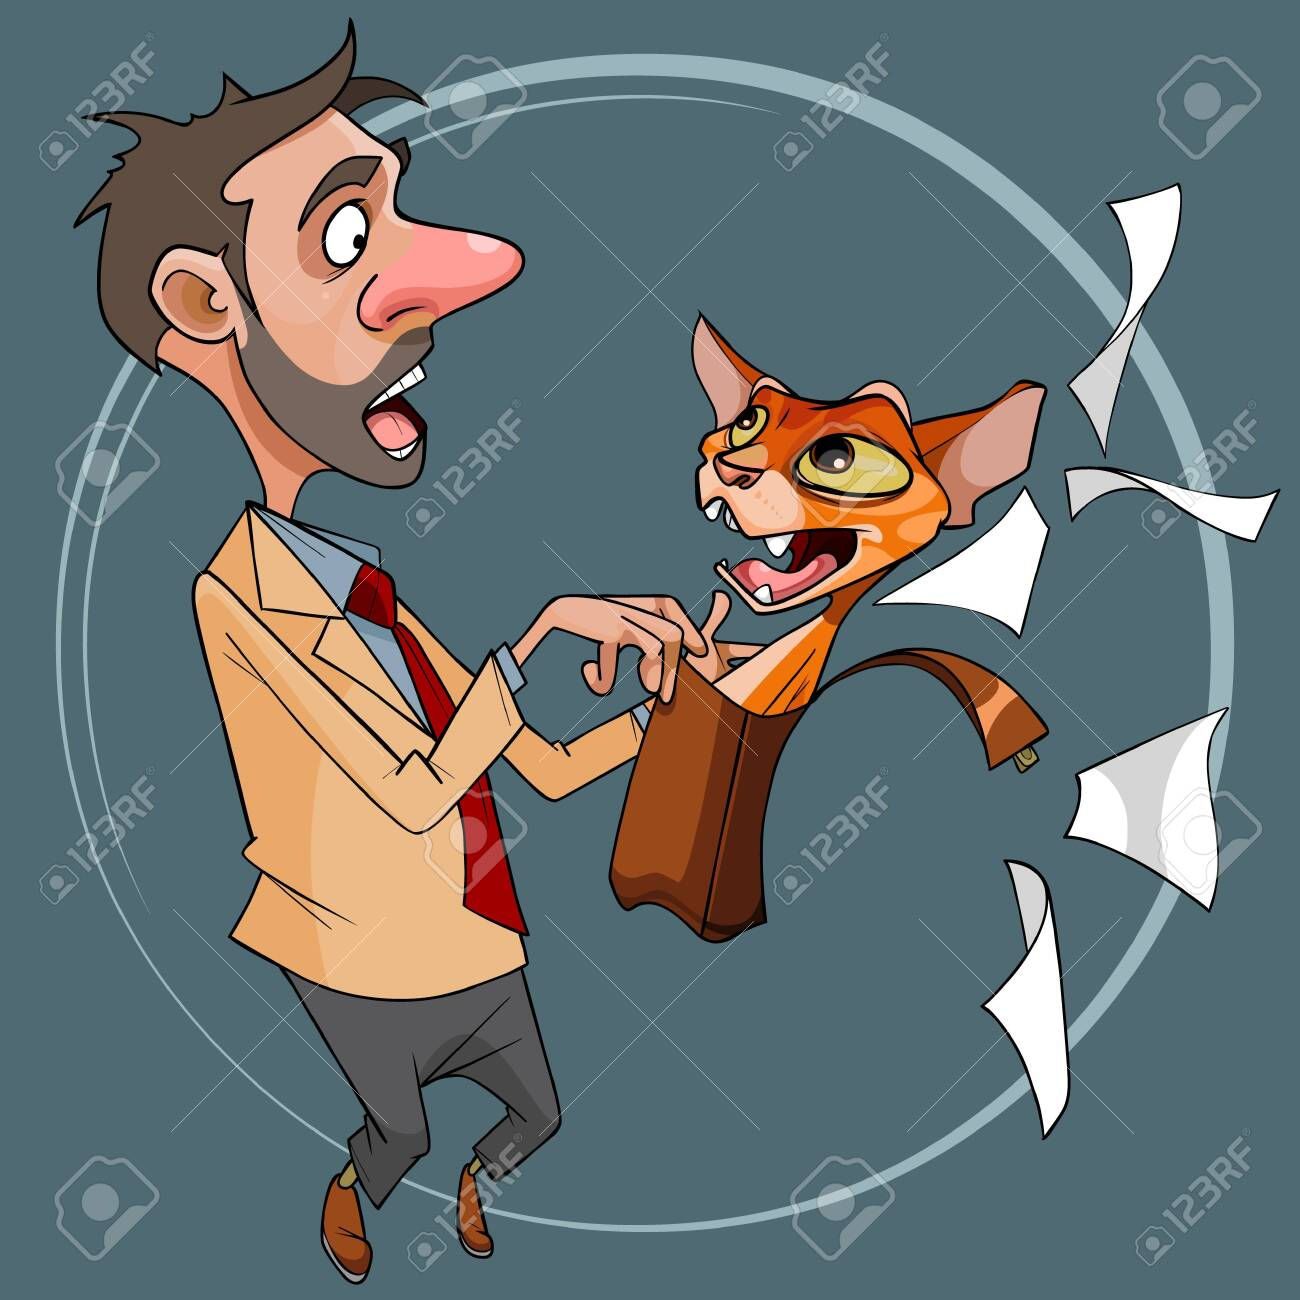 cartoon red cat got out of portfolio scaring a man - 147044097